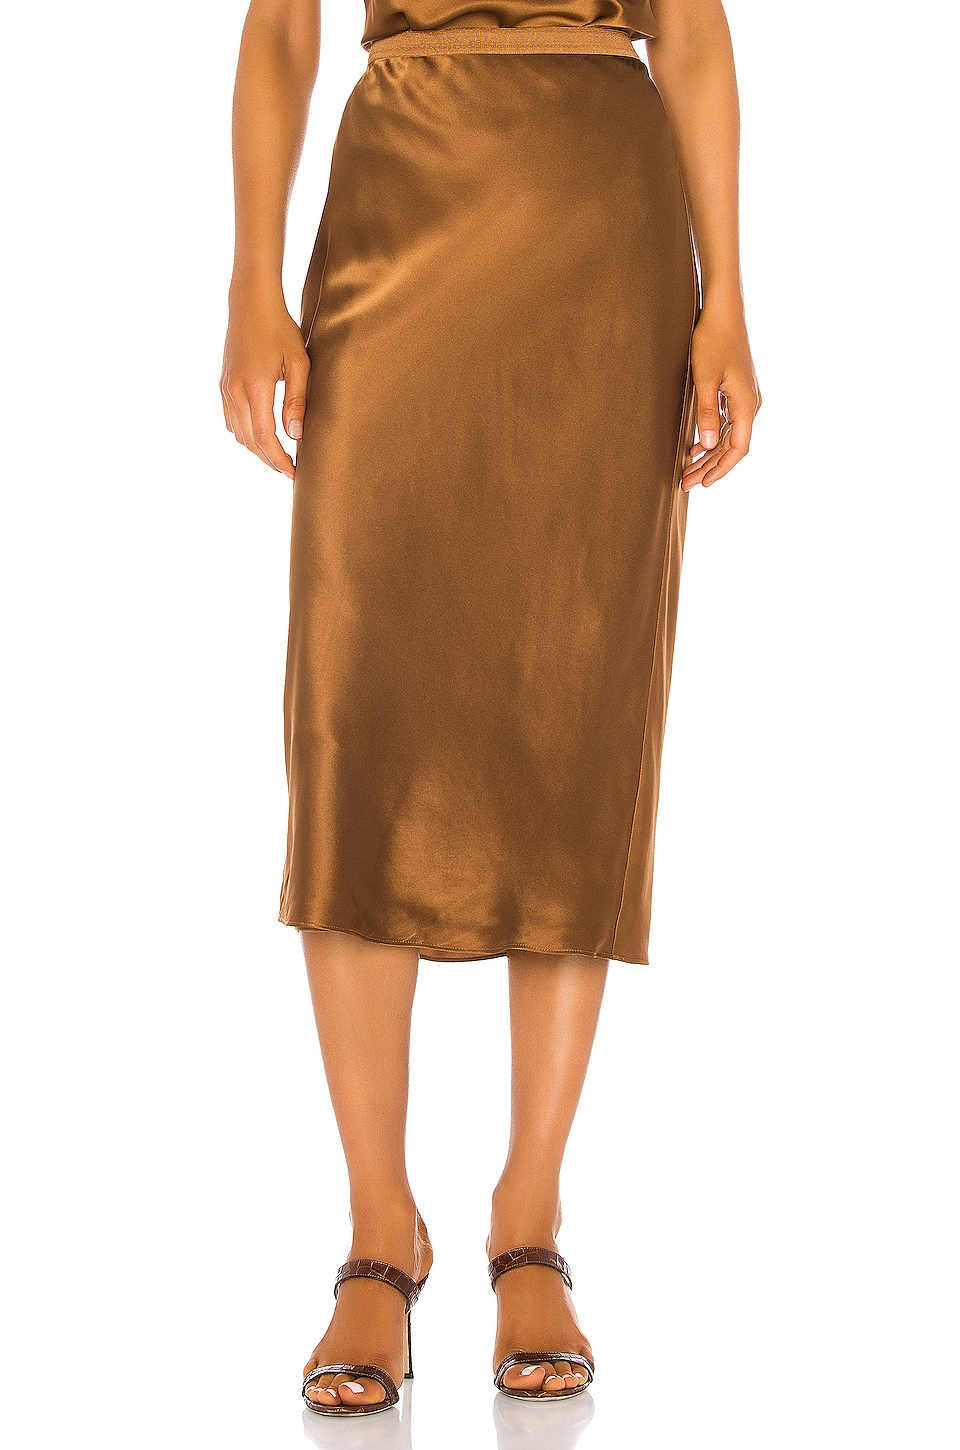 CAMI NYC The Jessica Skirt in Toffee